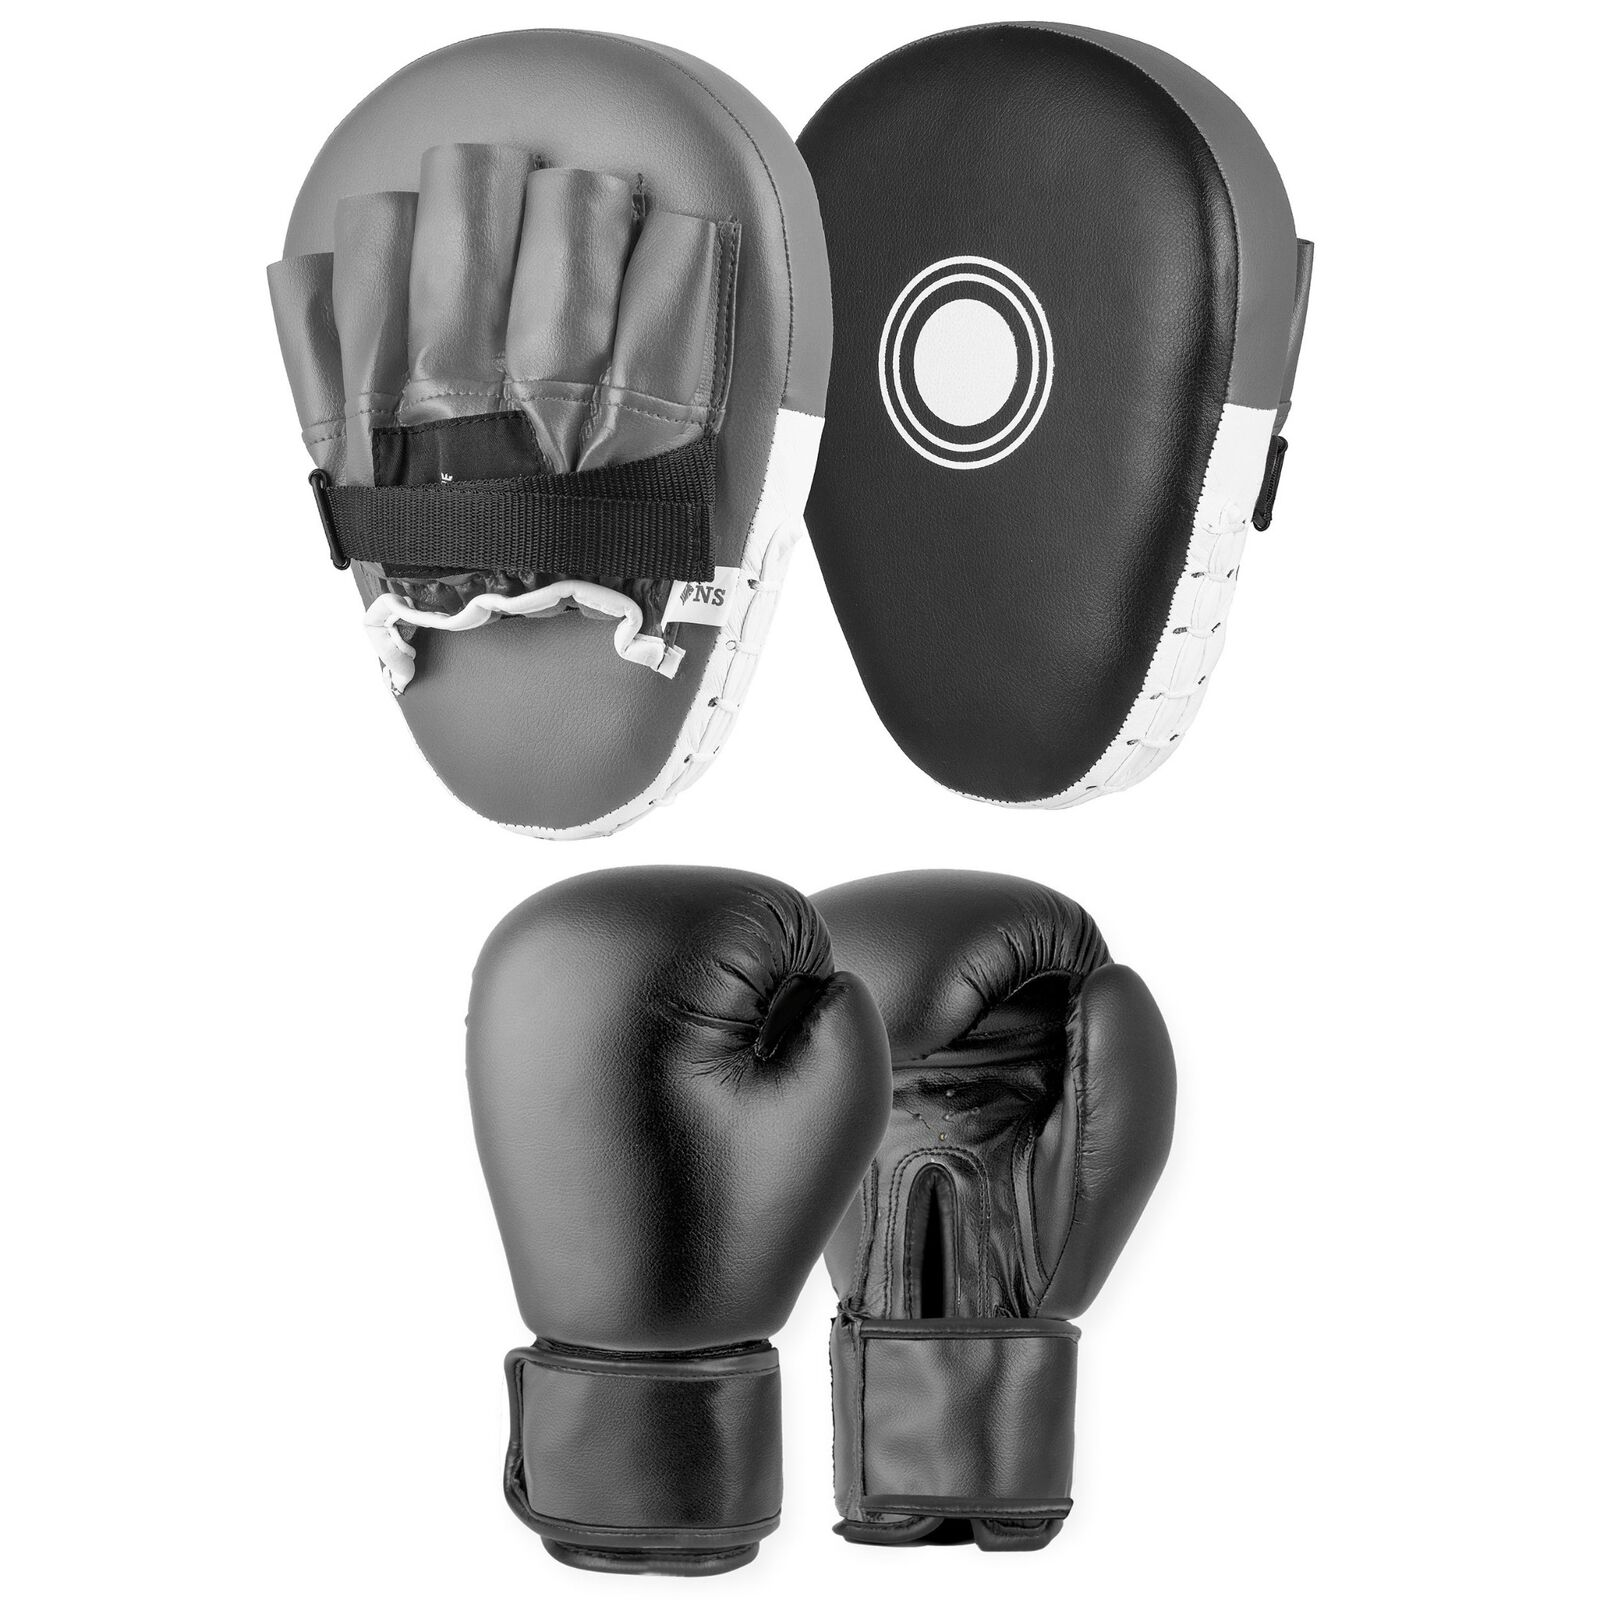 Lions Boxing Gloves And Focus Pads Set Curved Hook /& Jab Punch Bag Gloves Target Strike Shield Punching Mitts Training